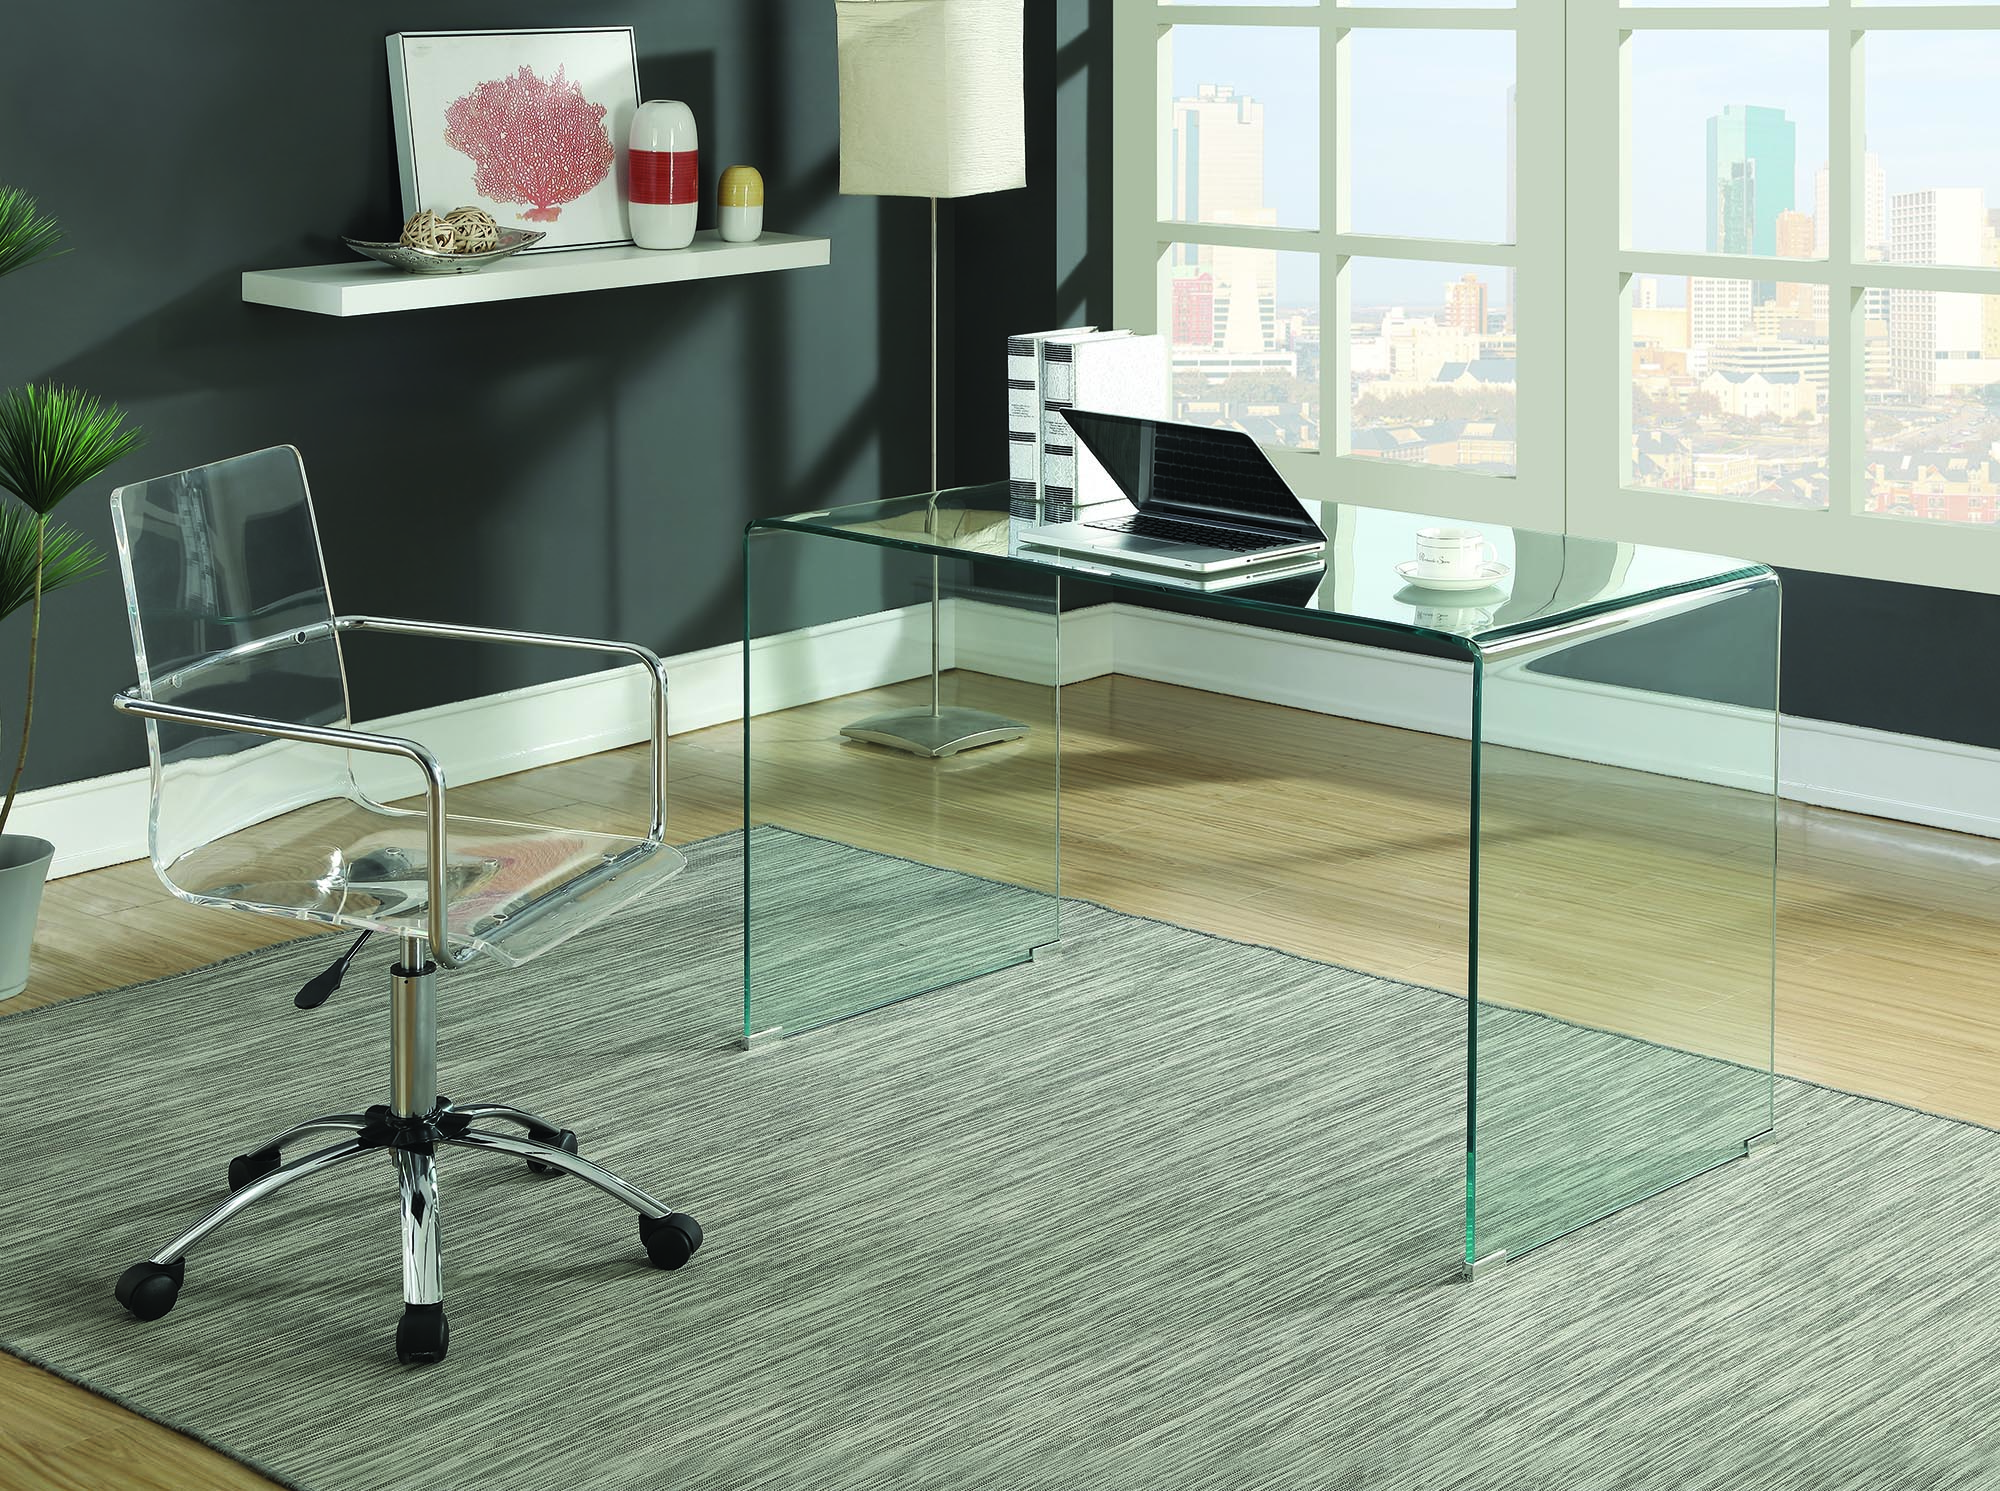 Glass desk for office Contemporary Imagesproducts801581jpg Wyckes Furniture Solid Glass Desk 801581 Clear Tempered Glass Round Modern